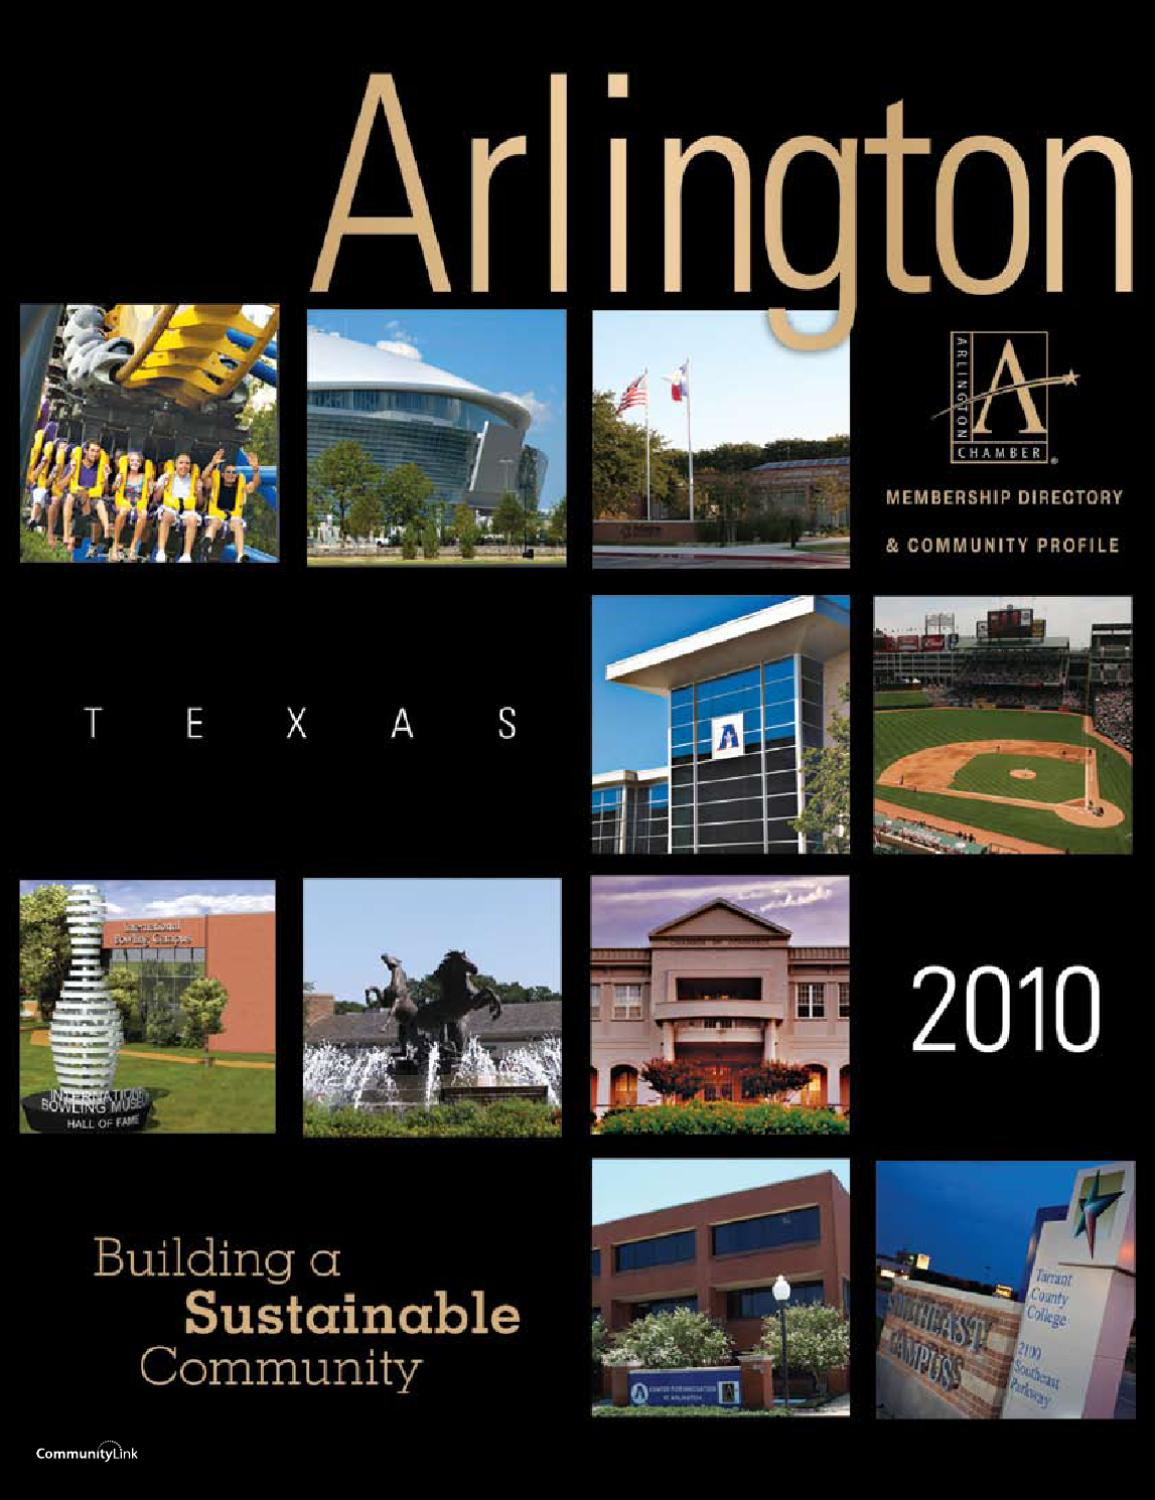 arlington tx membership directory and community profile by arlington tx 2010 membership directory and community profile